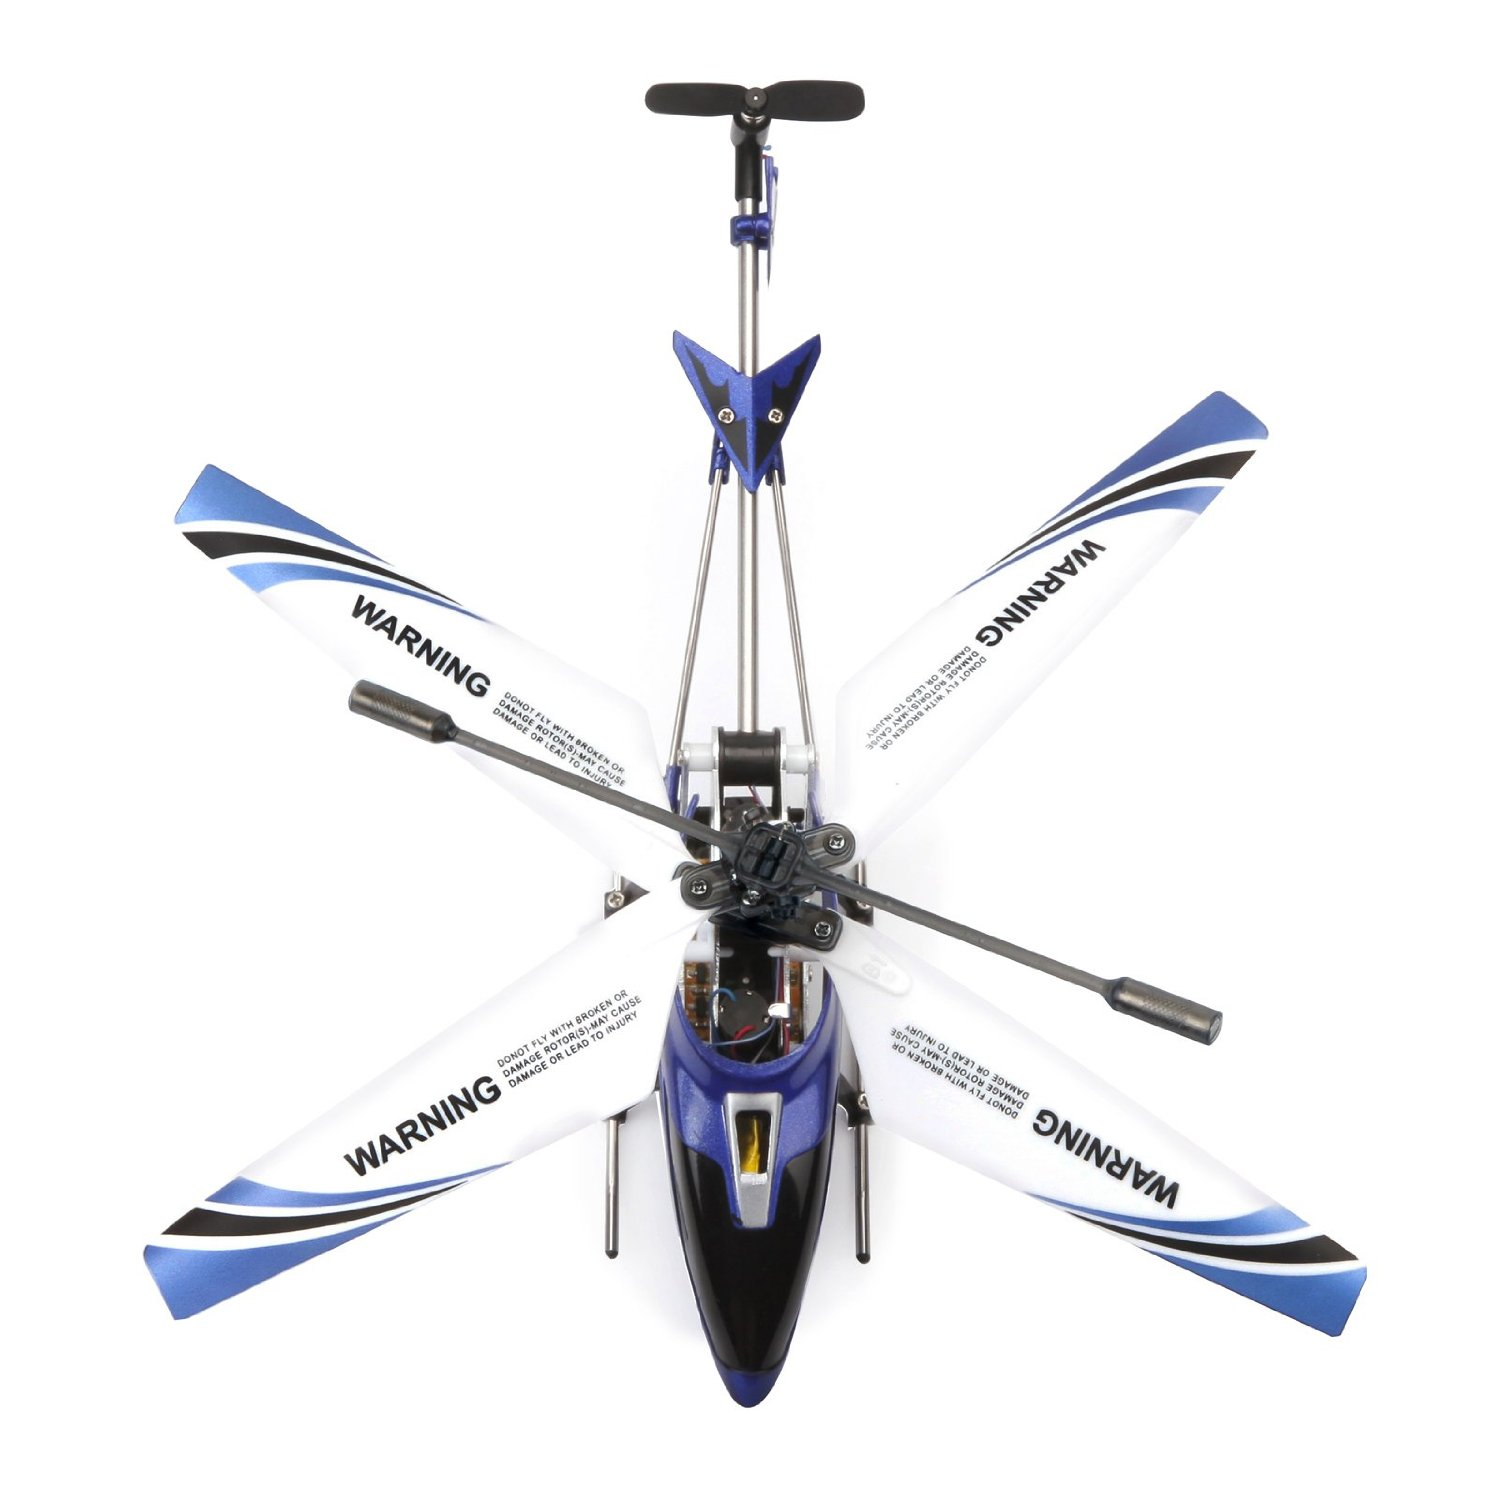 Channel rc helicopter with gyro3